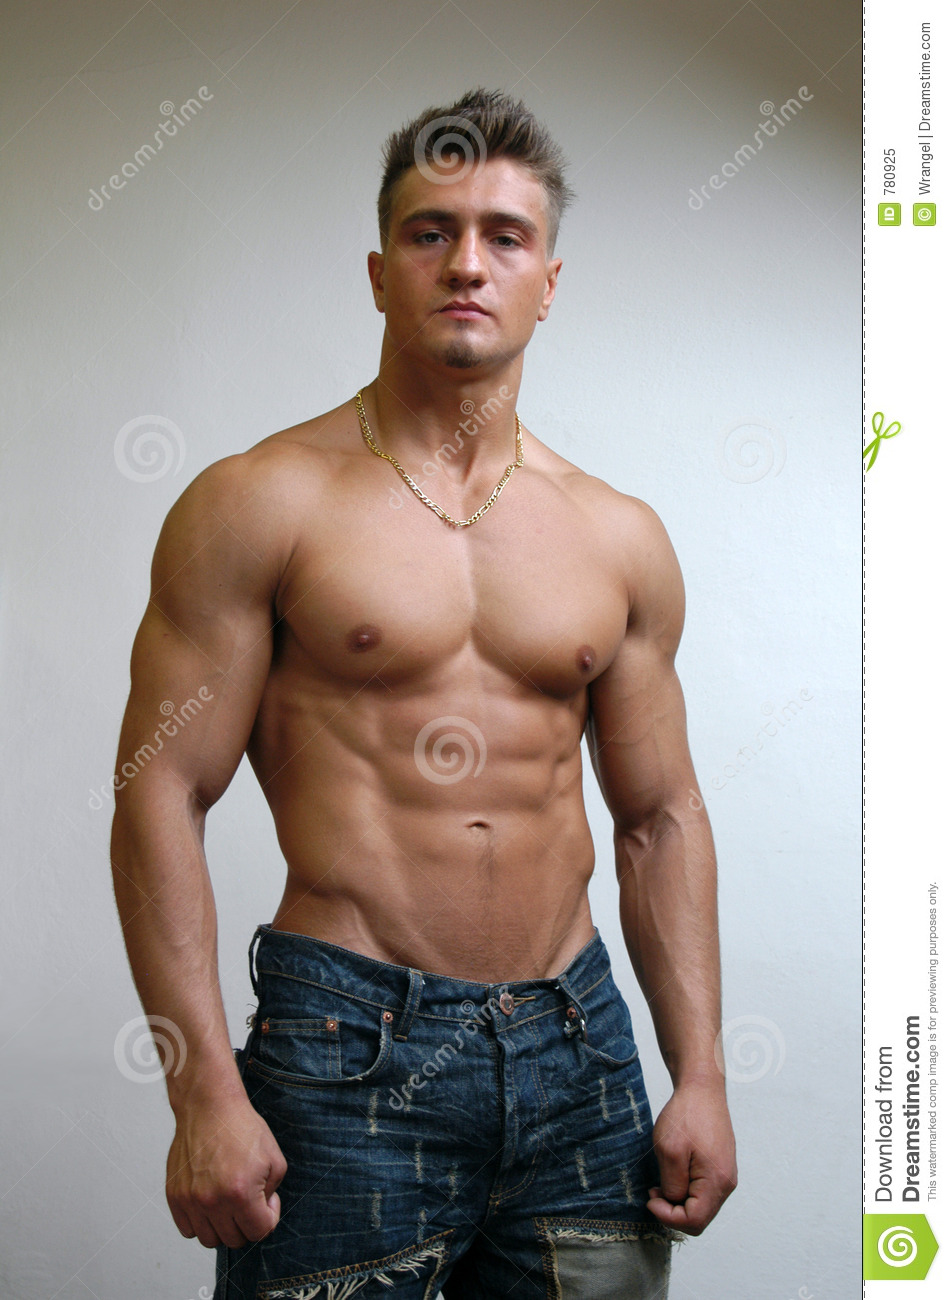 Muscular Male Torso Stock Image Image Of Stare Handsome 780925